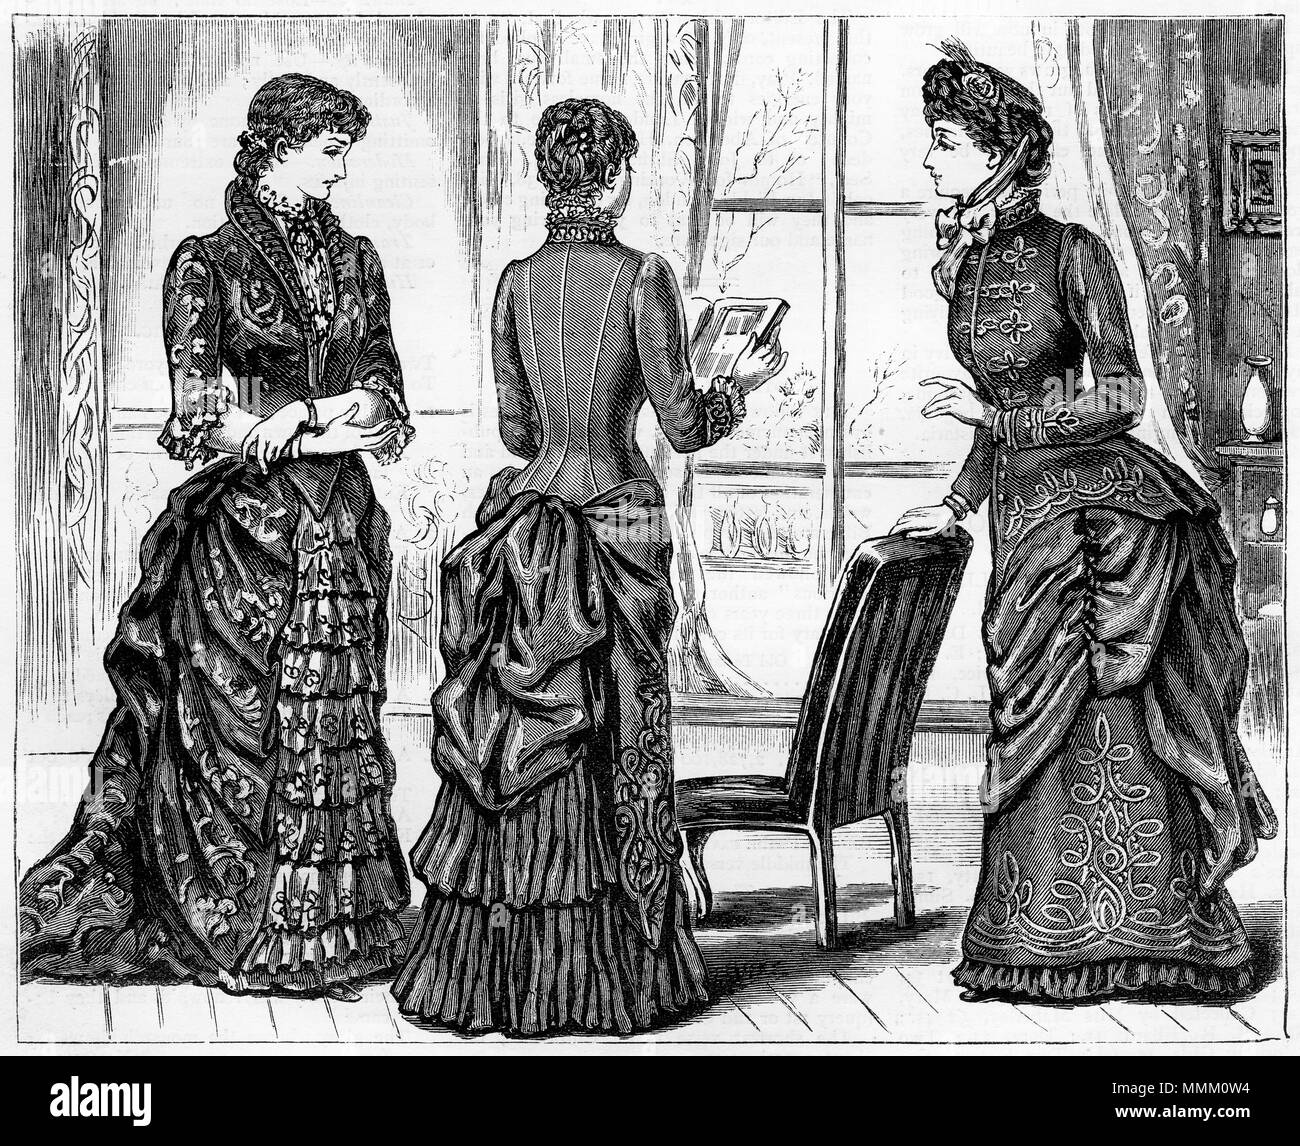 Engraving of three young woman in fashionable gowns of the era. From ...